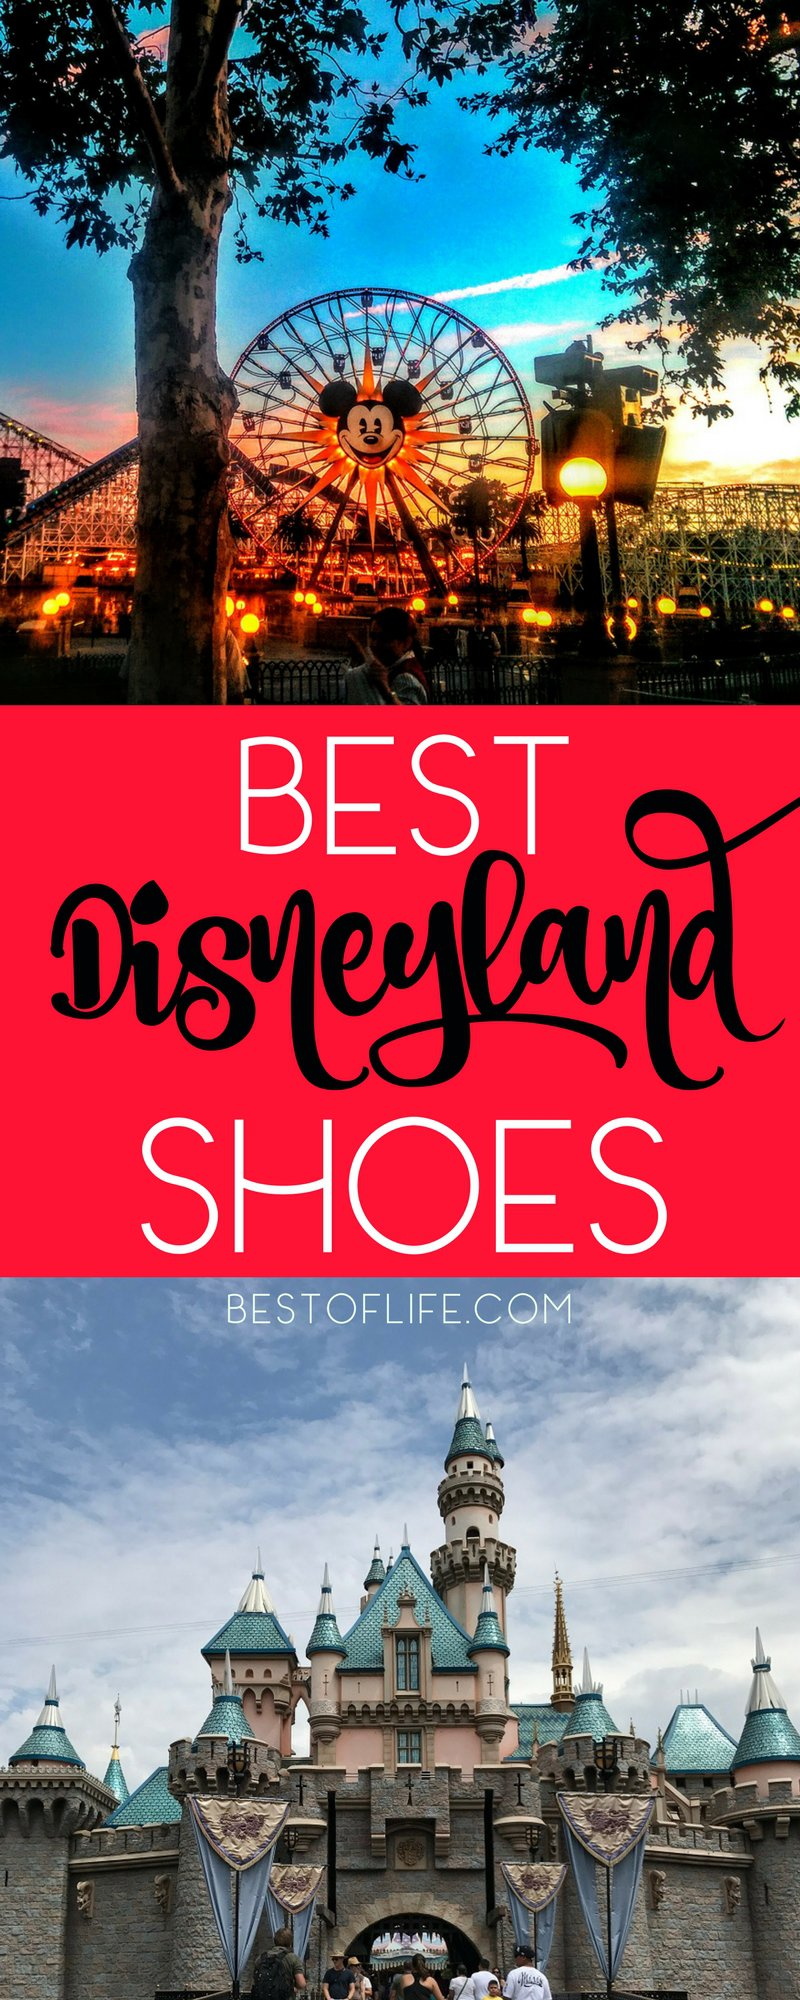 People walk an average of 15 miles per day while visiting a Disney park, which is why it's important to have the best shoes for Disneyland or any Disney vacation. Best Shoes for Disneyland | Most Comfortable Shoes for Disneyland | Affordable Shoes for Disney Parks | Disneyland Tips | Tips for Visiting Disneyland | Tips for Visiting Disney Parks | Disney World Travel Tips